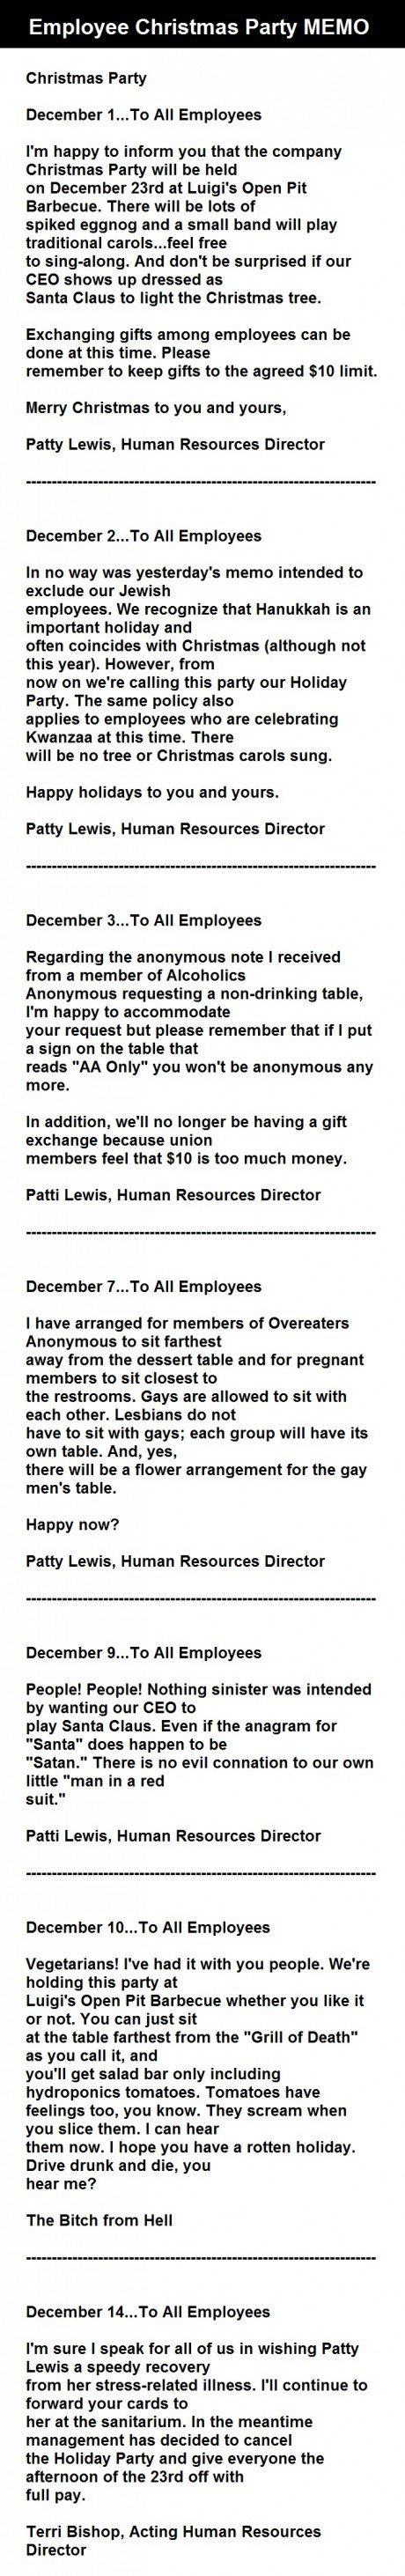 Enjoy Reading This Employee Christmas Party Memo As It Carries Some